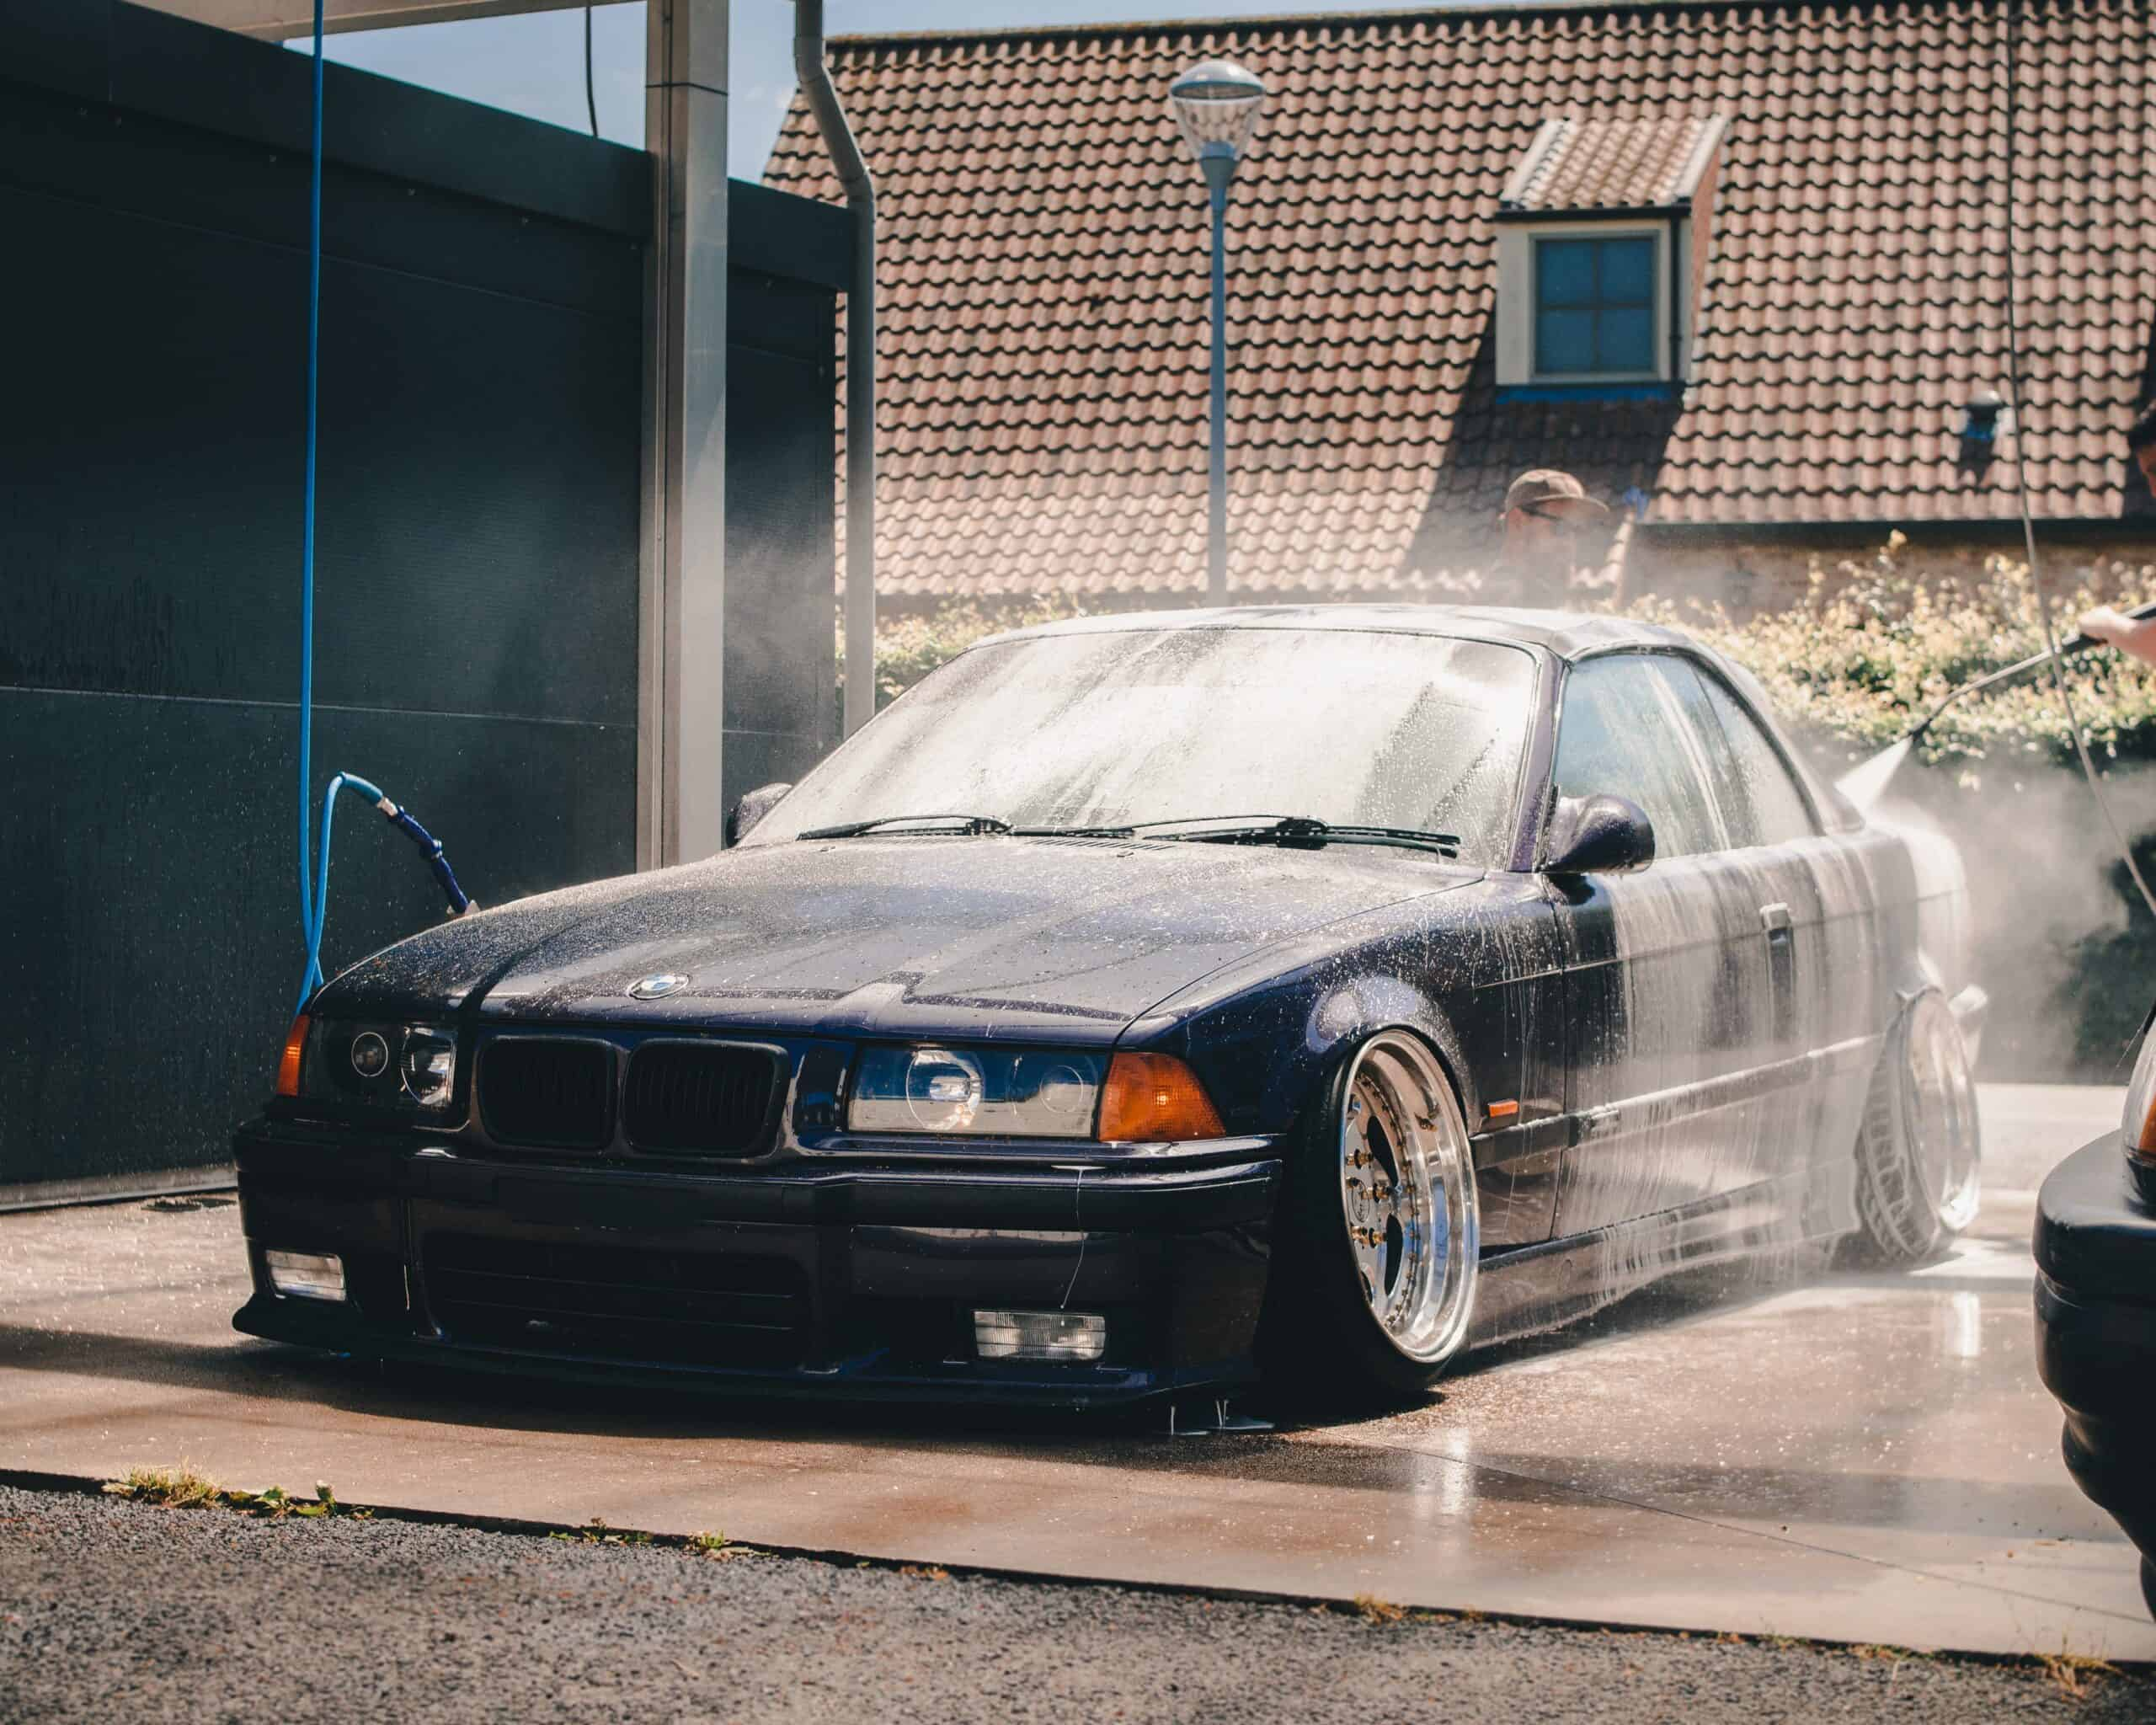 BMW Car Wash Guide - how to clean bmw alloy wheels